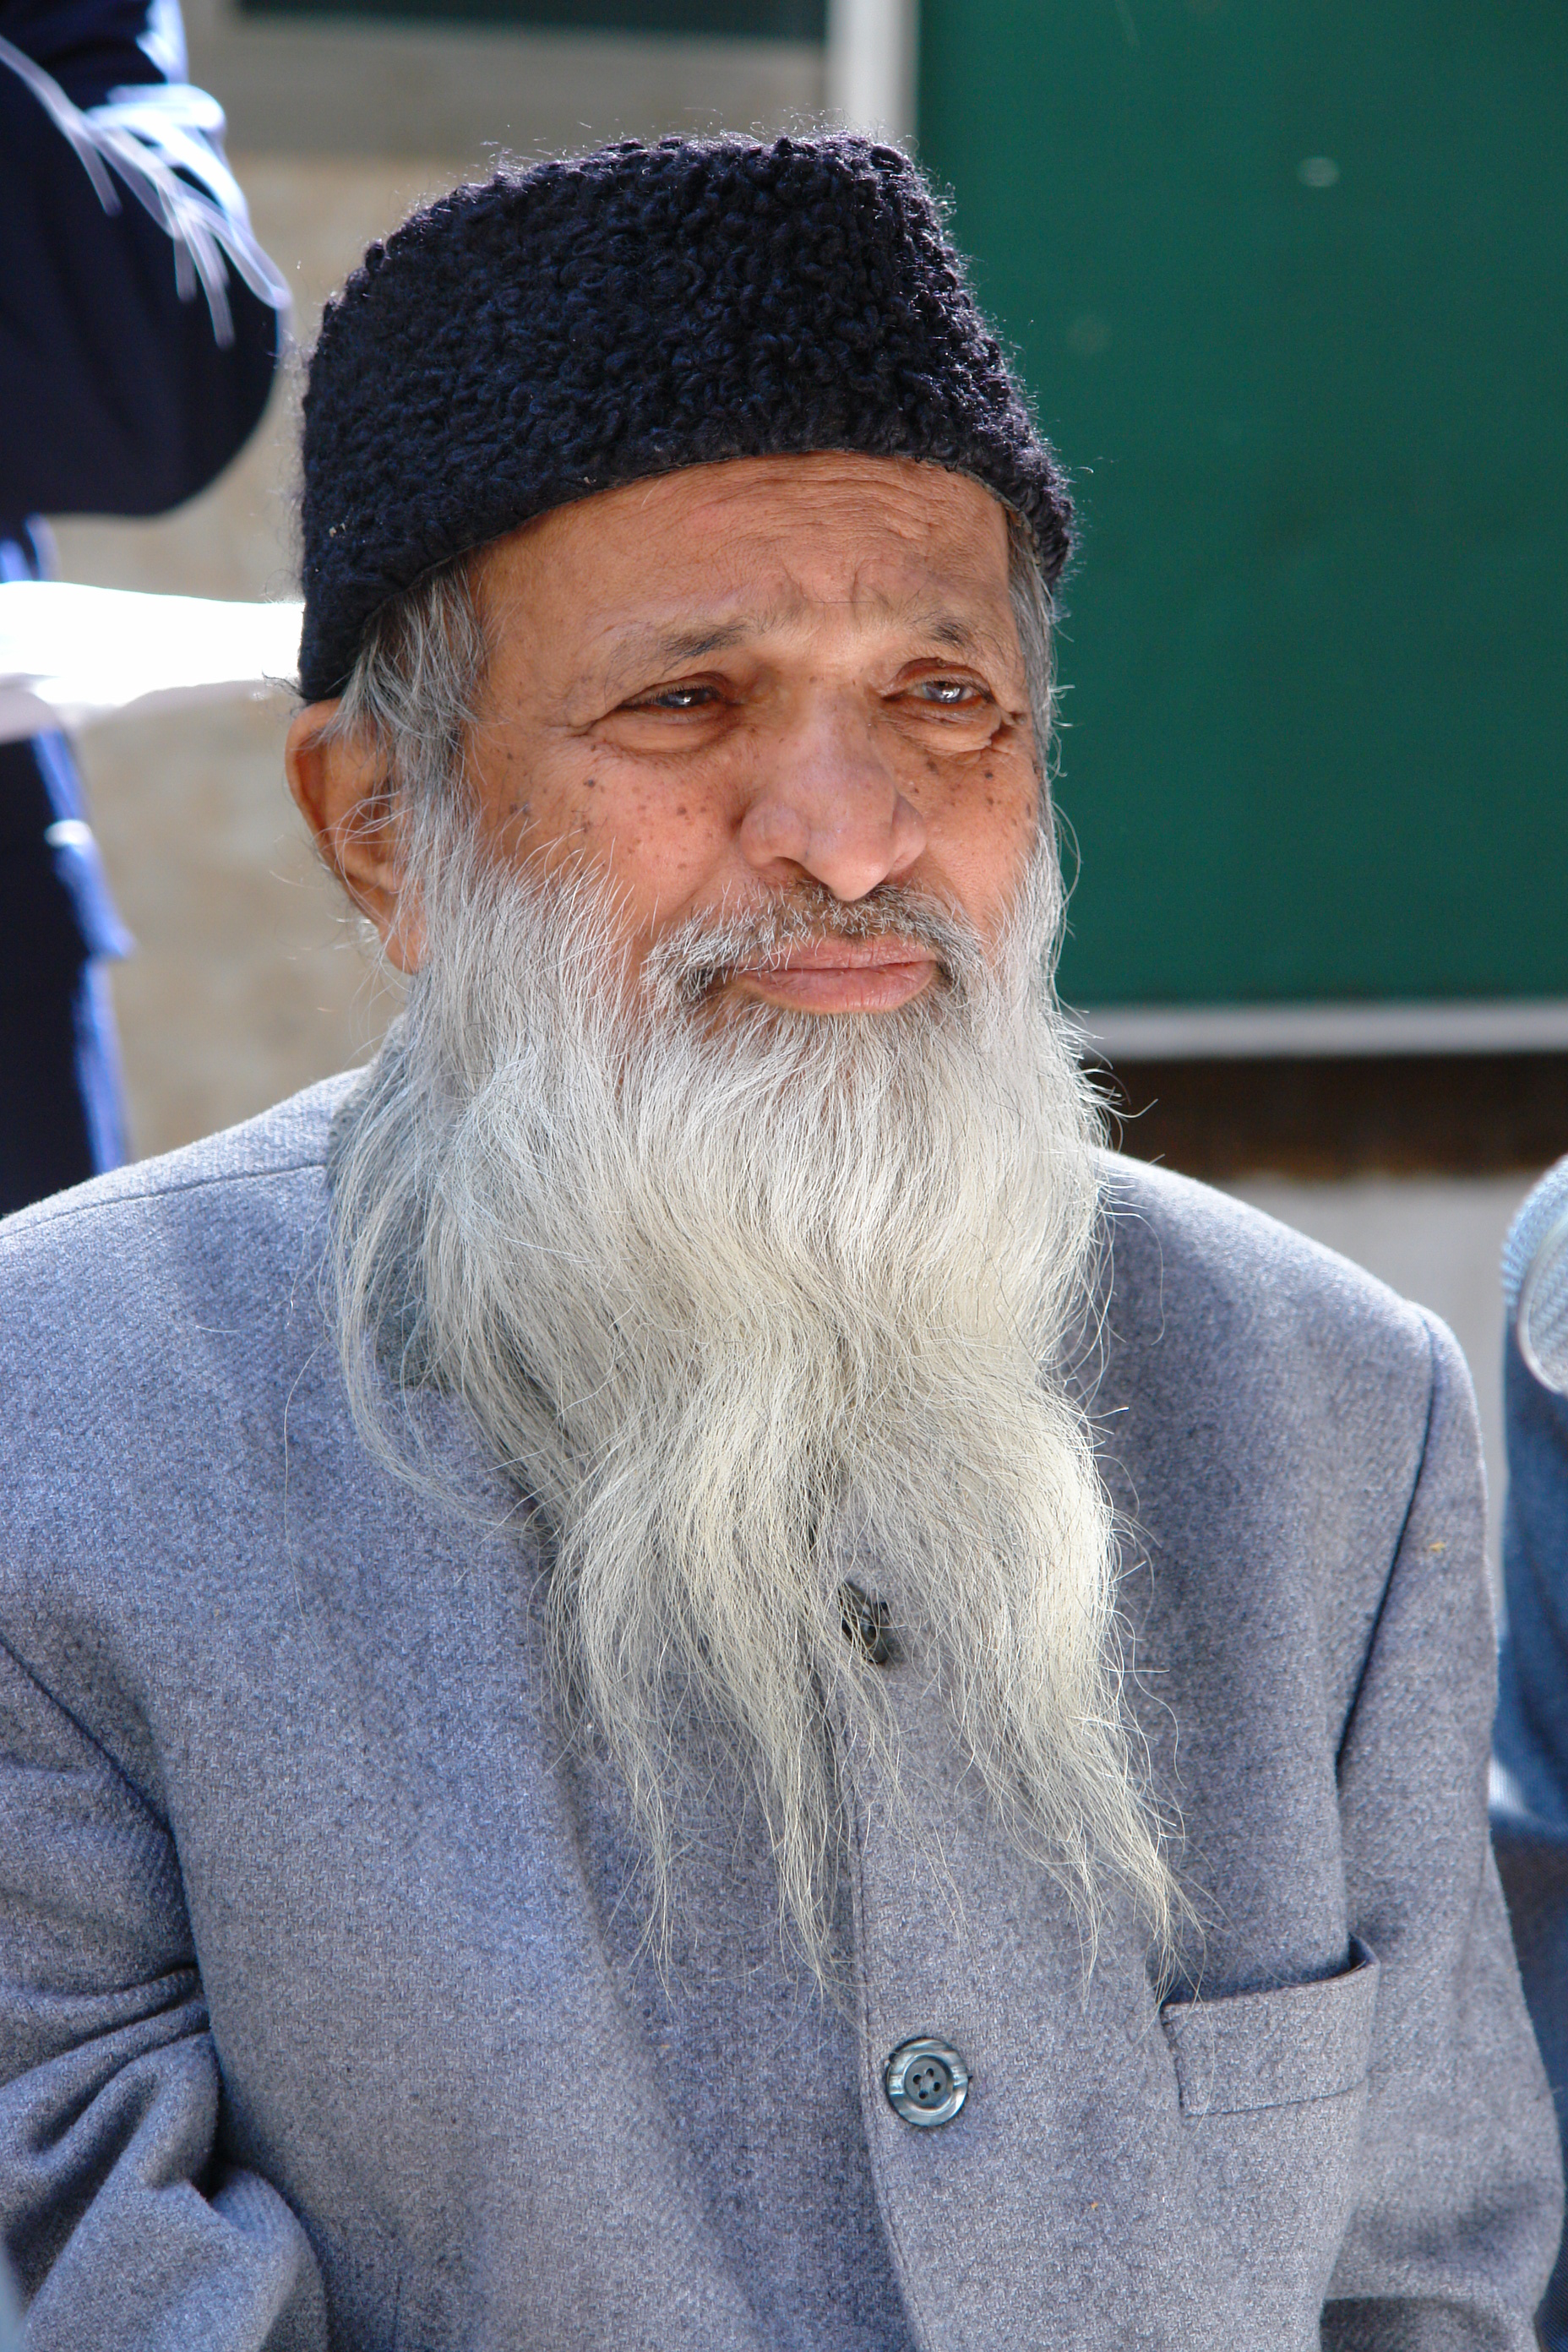 File:Abdul Sattar Edhi.jpg - Wikipedia, the free encyclopedia